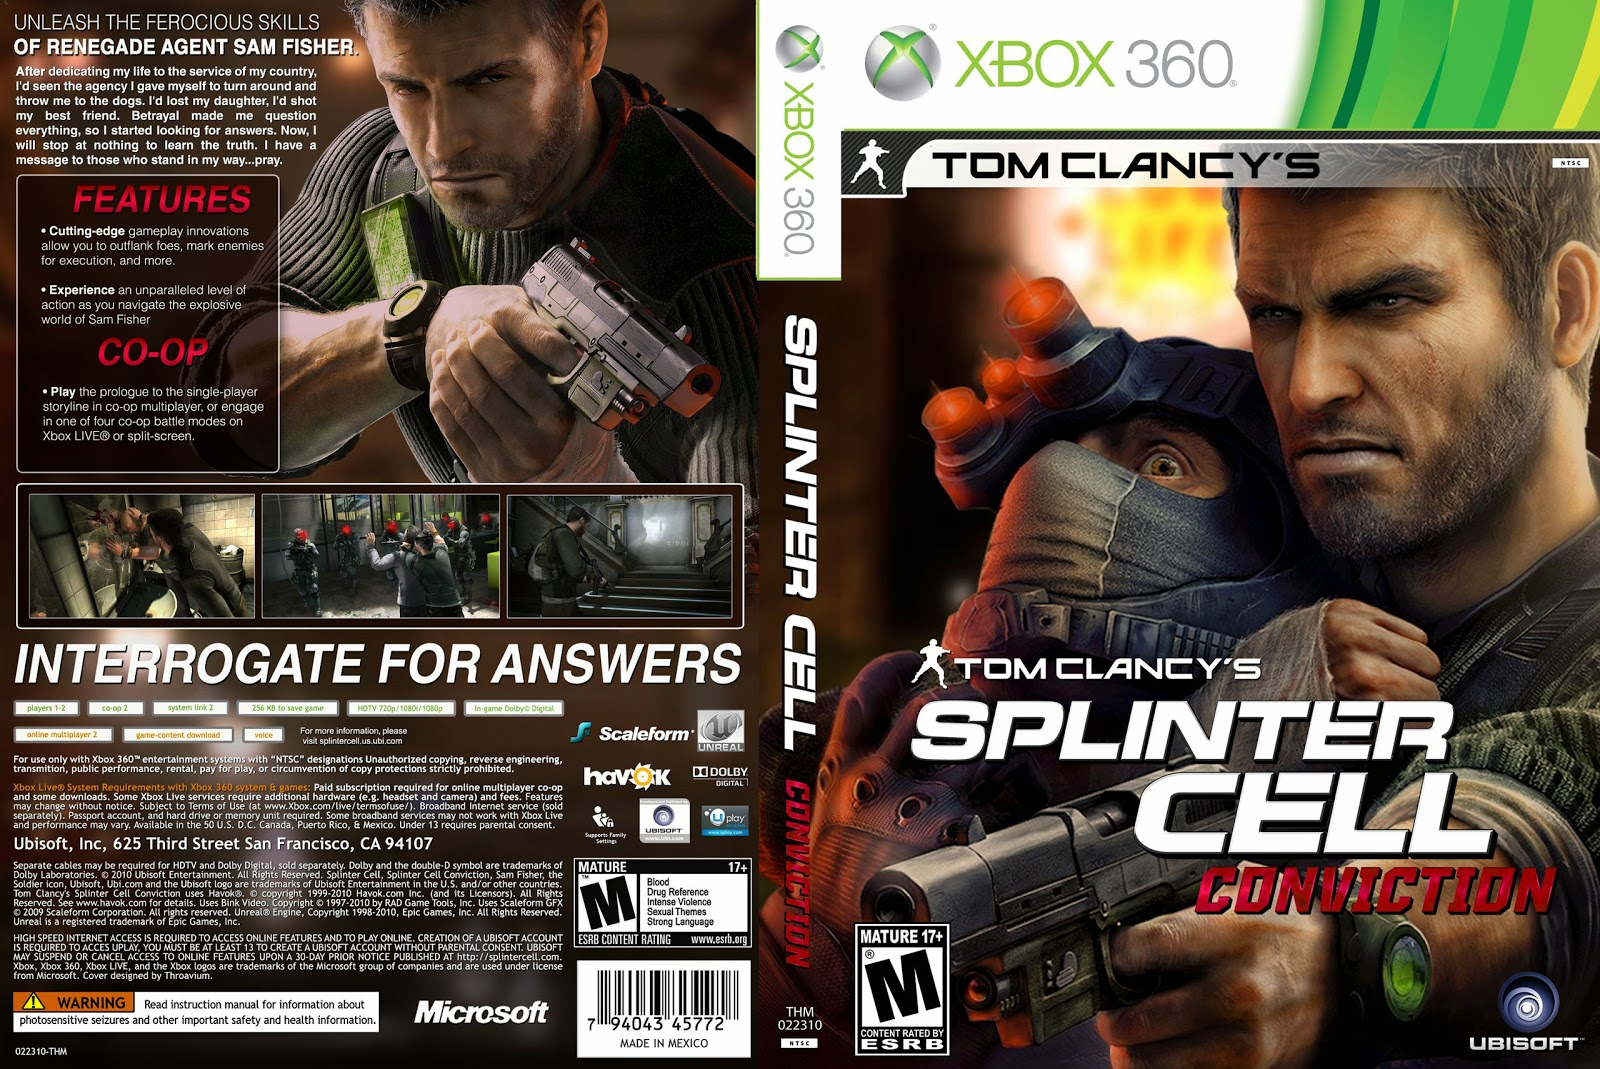 Capa Splinter Cell Conviction Xbox 360